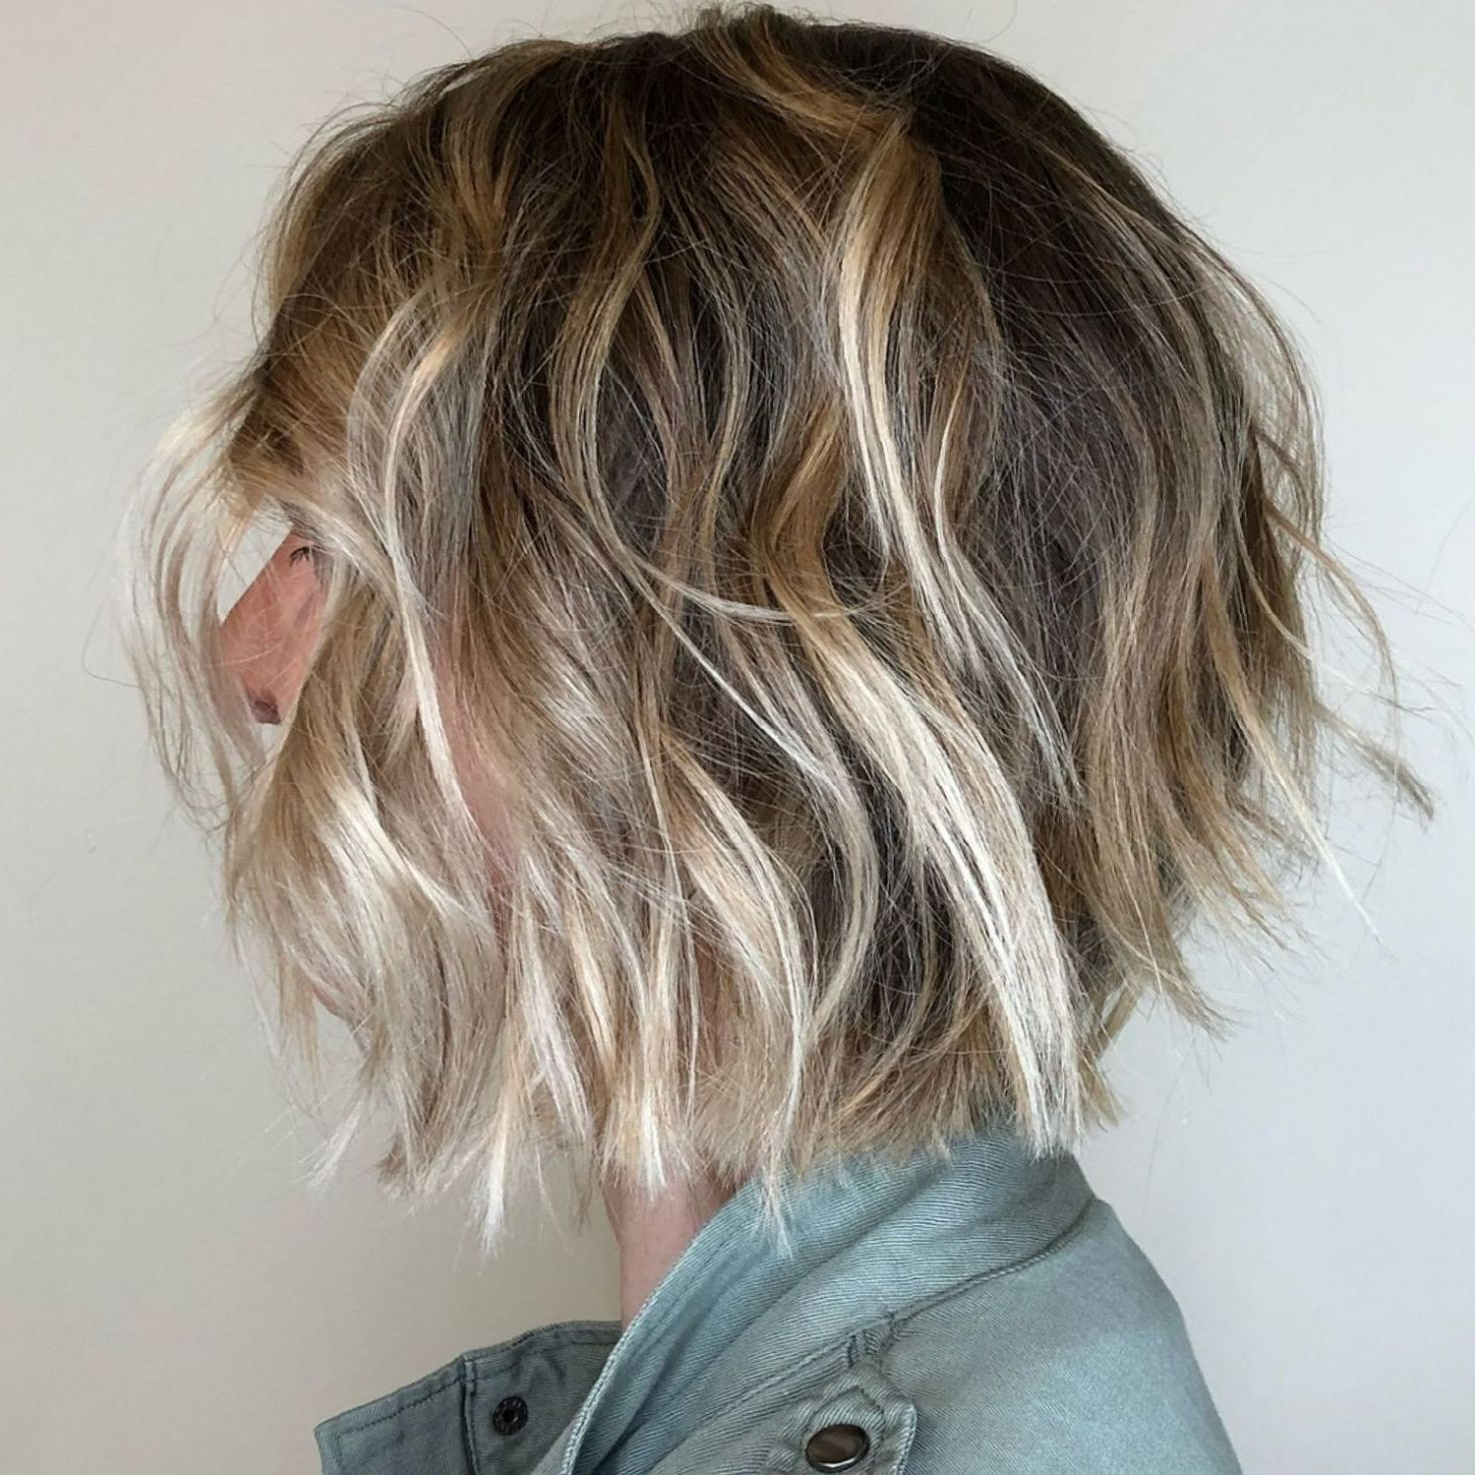 Fashionable Smart Short Bob Hairstyles With Choppy Ends Throughout 60 Short Shag Hairstyles That You Simply Can't Miss In (View 3 of 20)